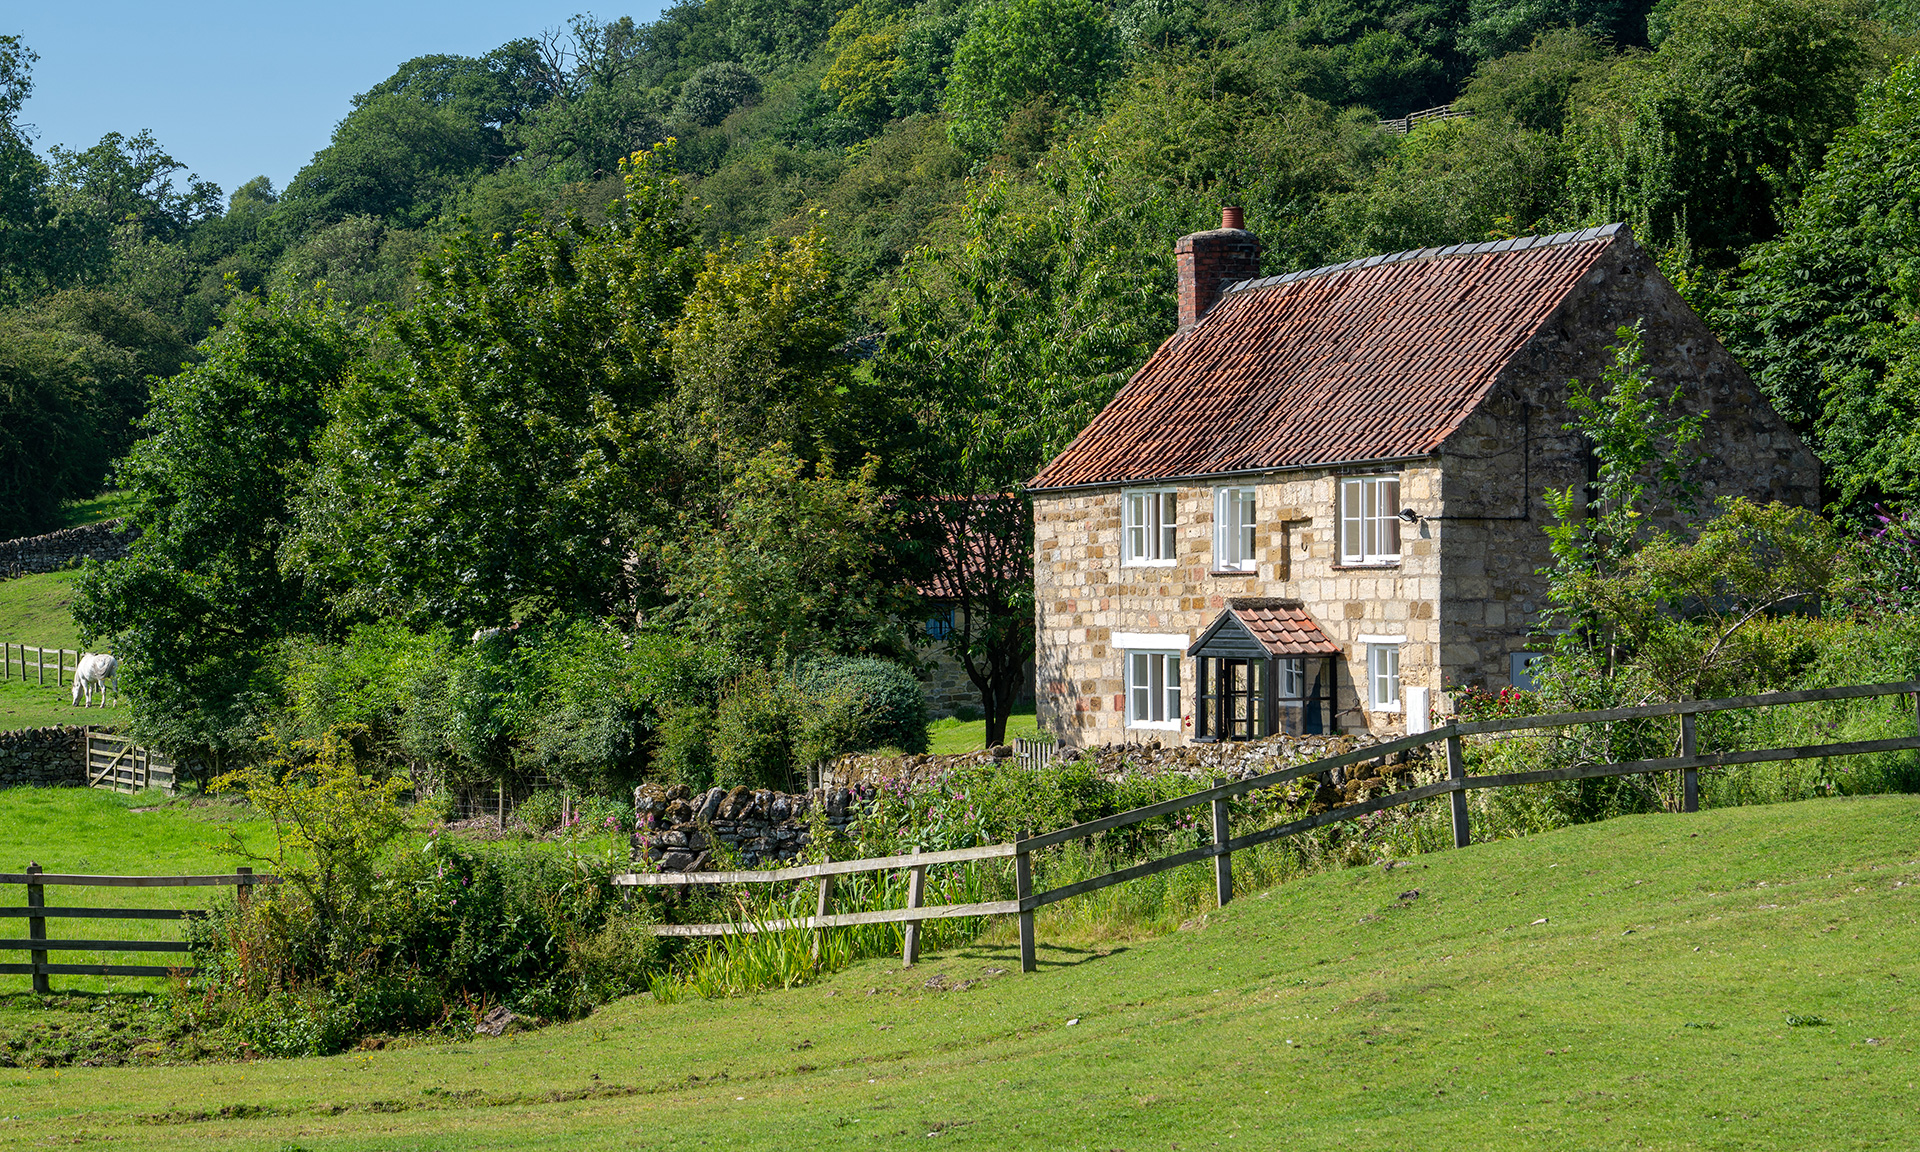 Are summer cottage holidays in the UK really running out for next year already?